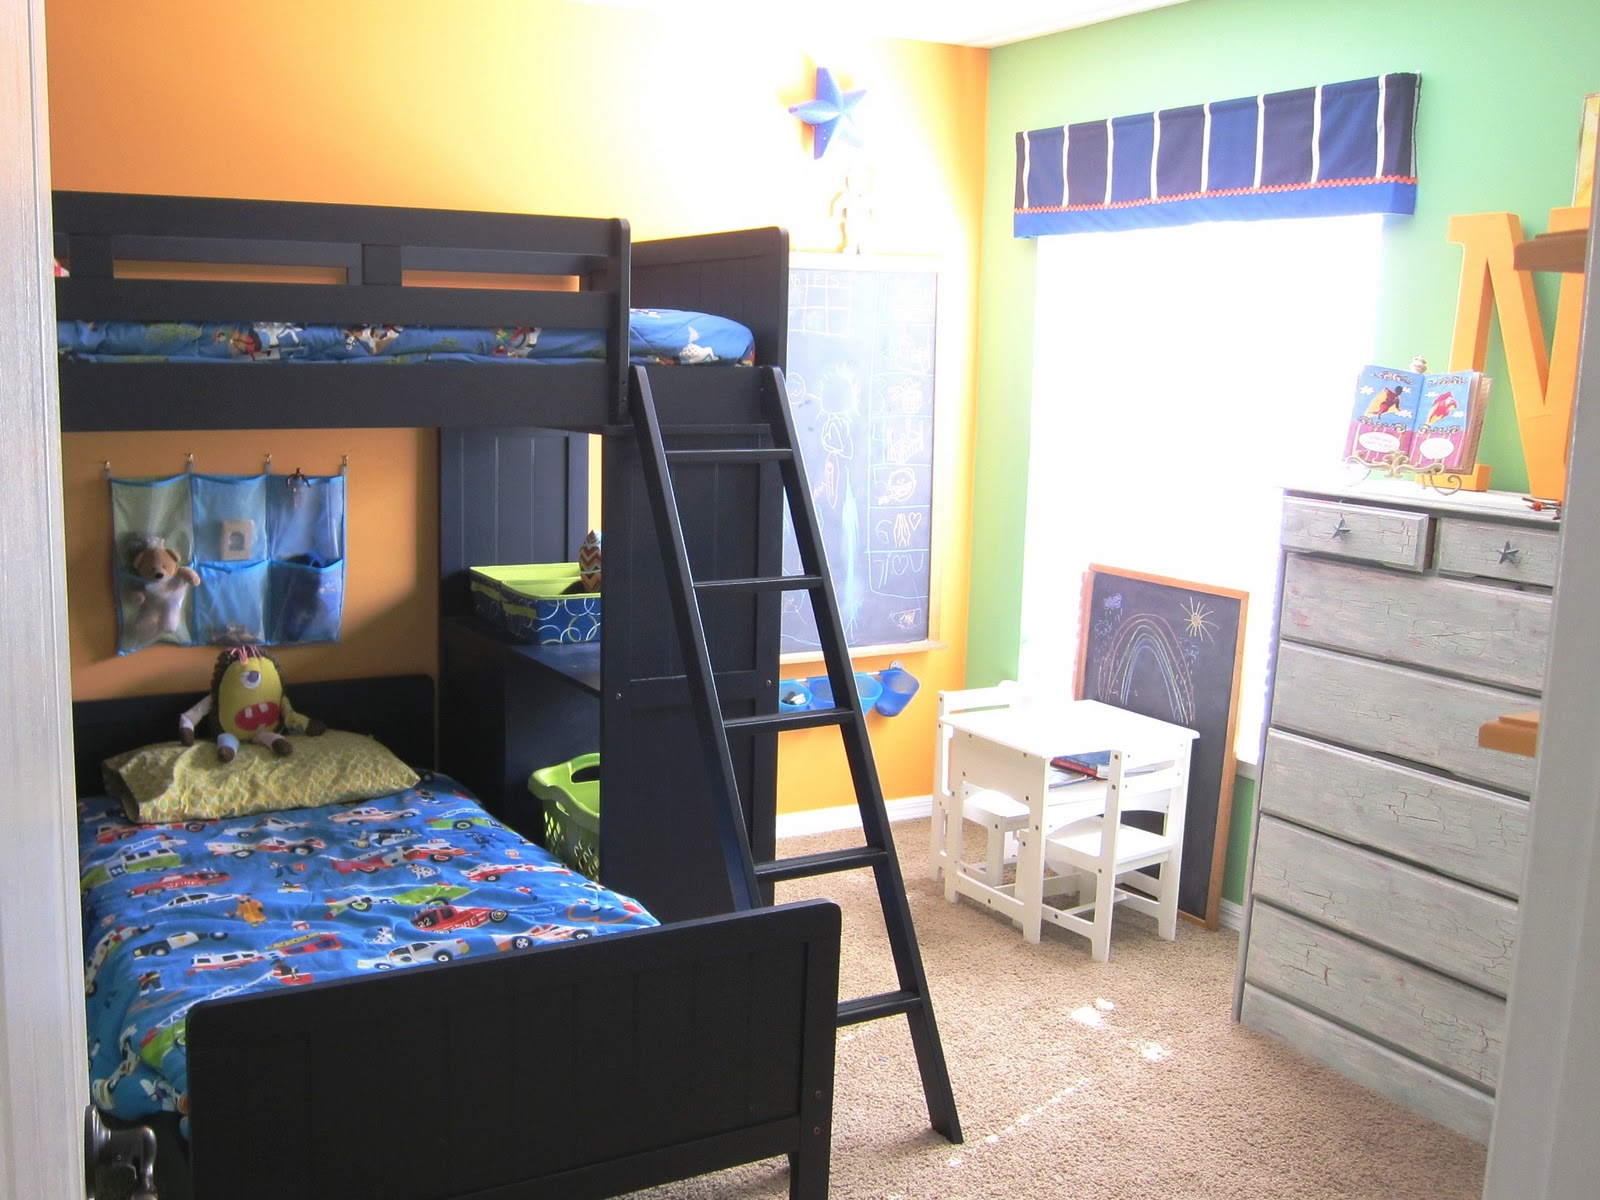 Corey moortgat collage artist march 2011 for Bedroom designs for boy and girl sharing